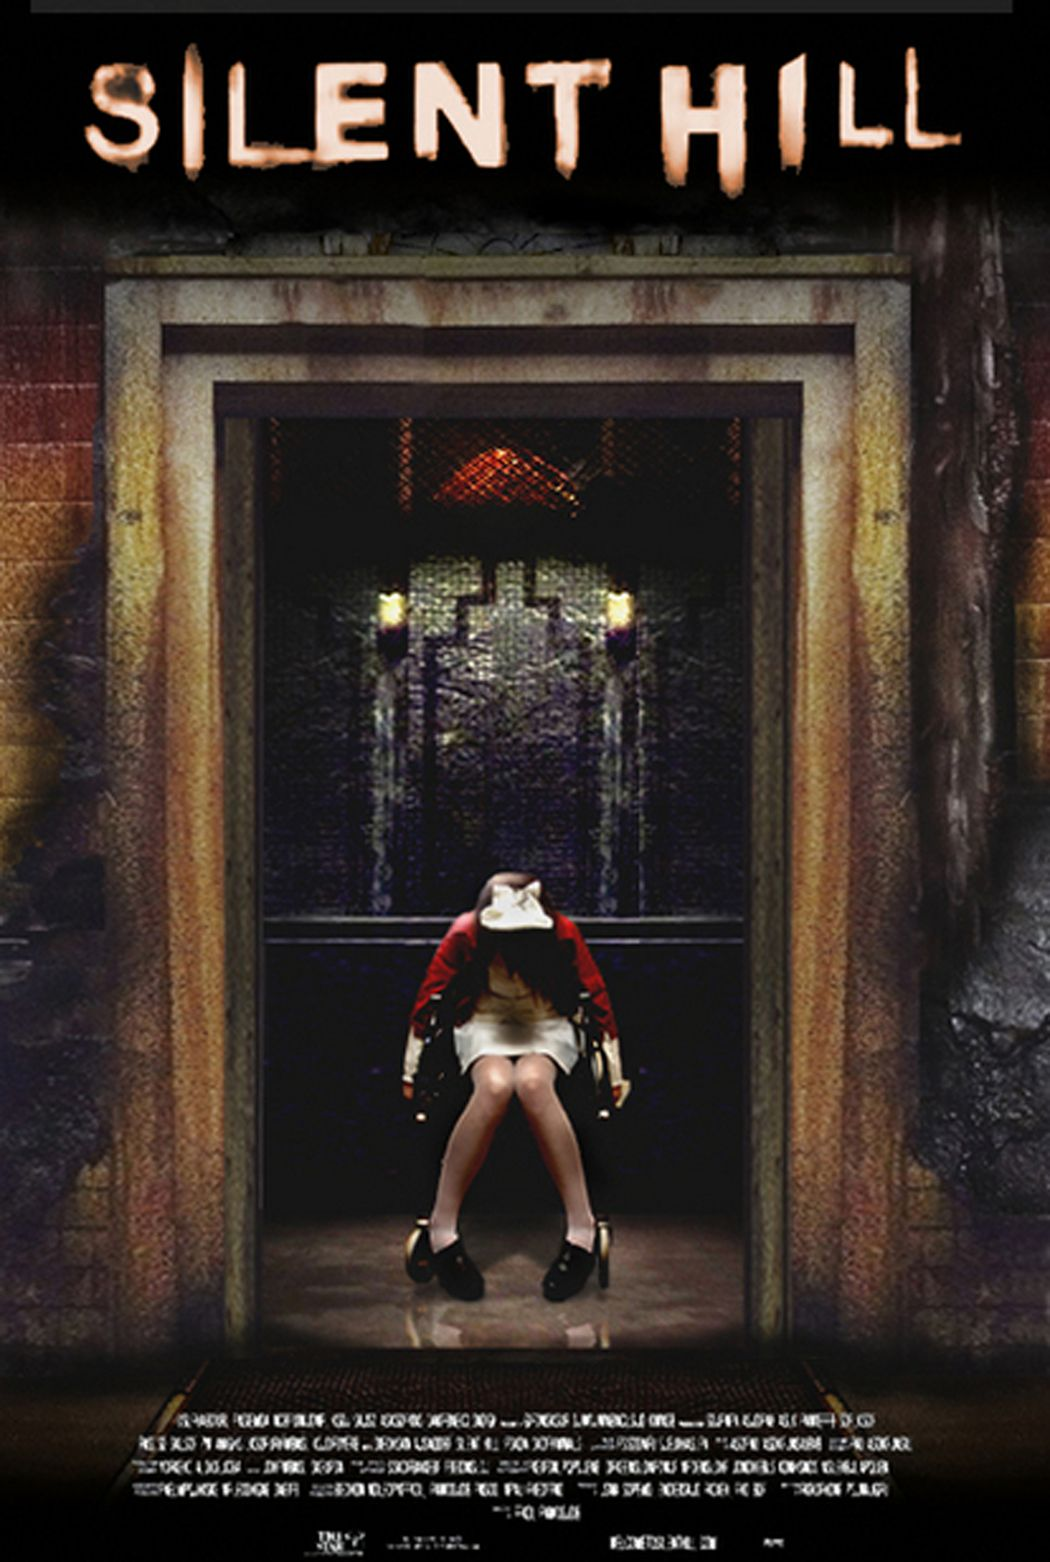 Silent Hill Movie Poster By Thespartanofauburn On Deviantart Silent Hill Movies Silent Hill Silent Hill Nurse